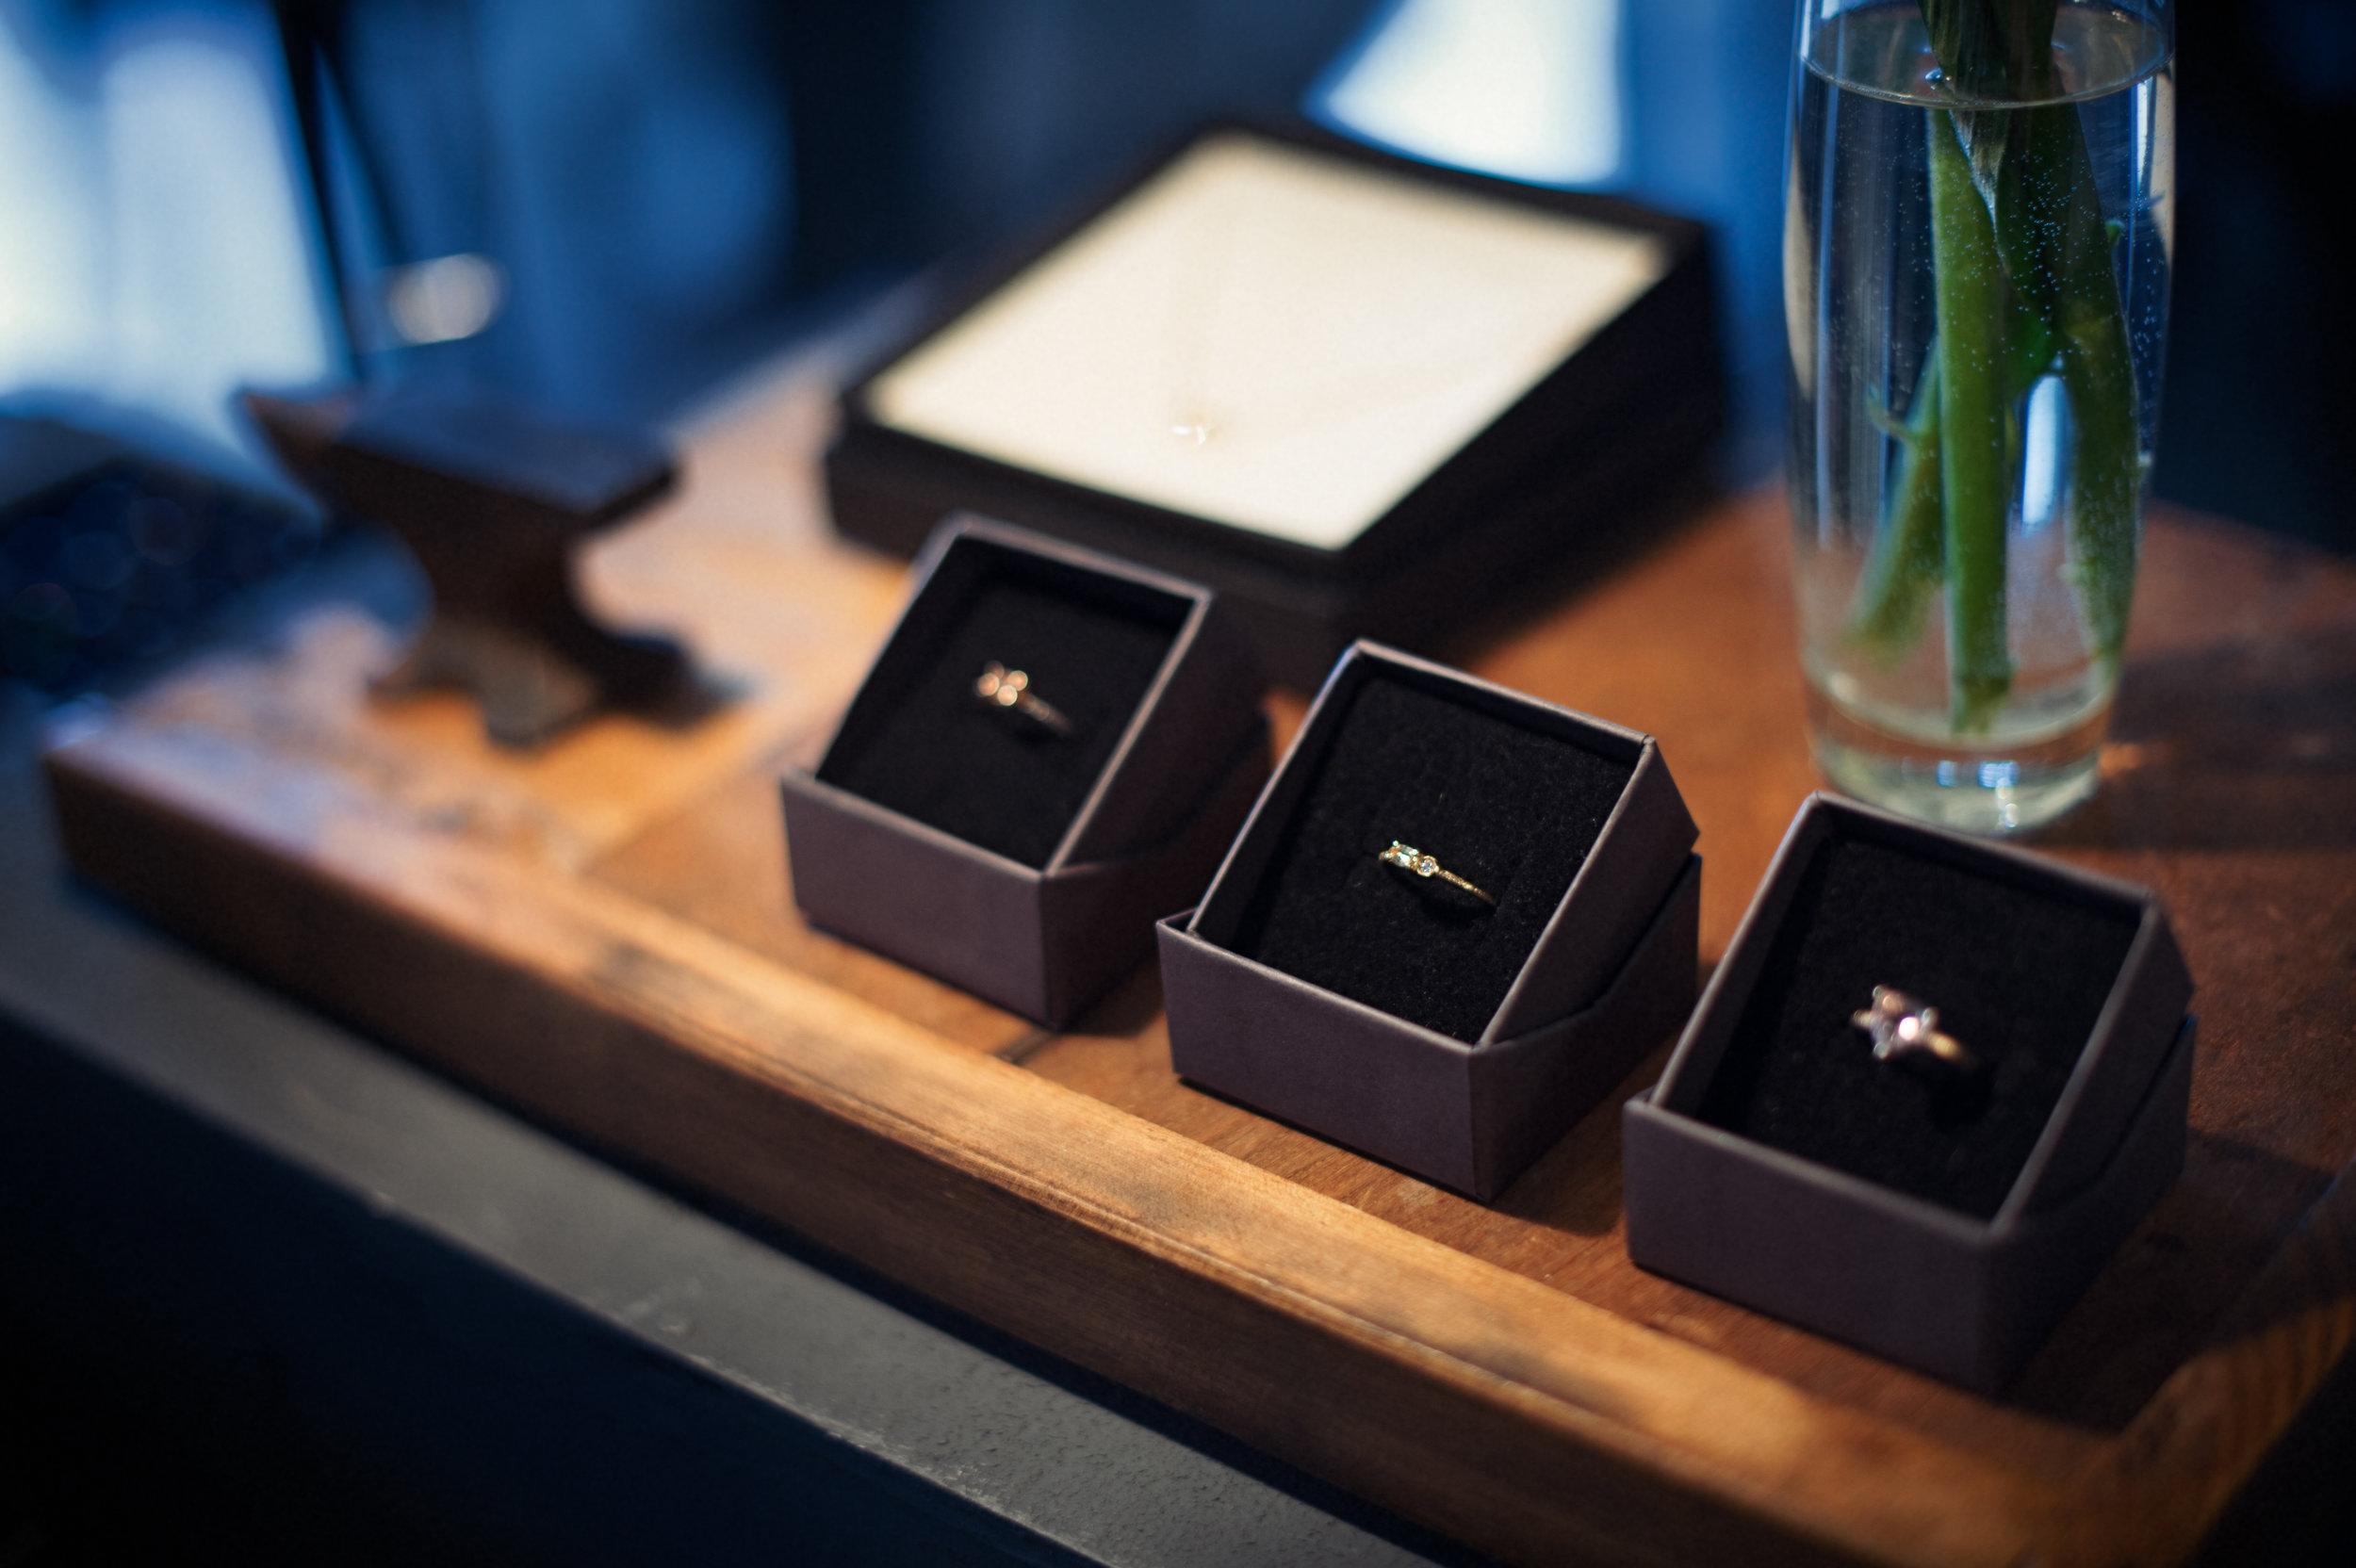 The wedding ring symbolizes unity and commitment. - At Wanderlust Jewelers, they are committed to creating the perfect ring for you and your partner.